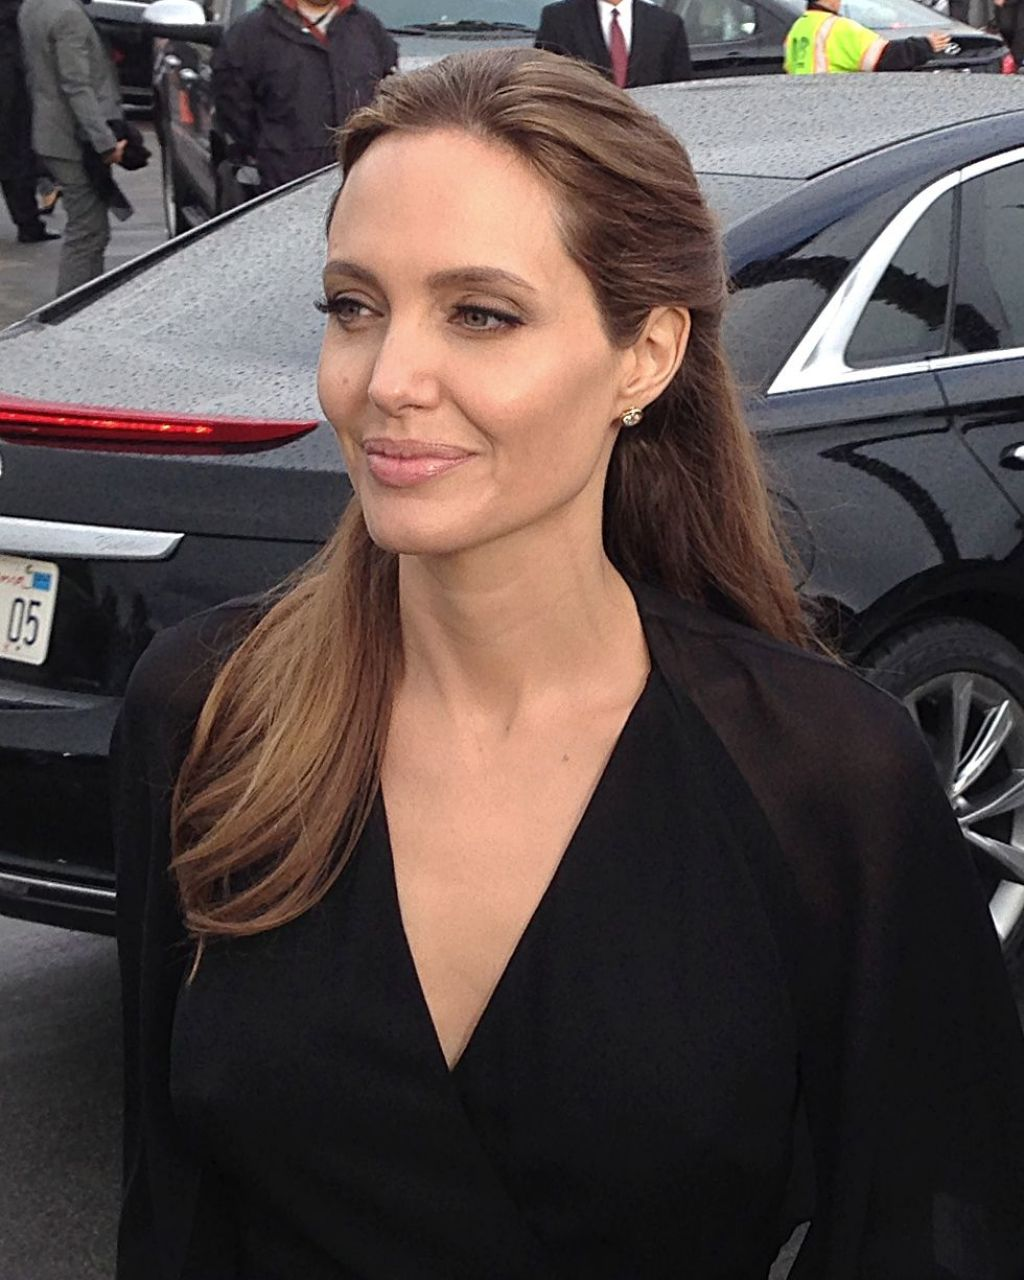 Angelina Jolie - Arriving at the 2014 Independent Spirit Awards